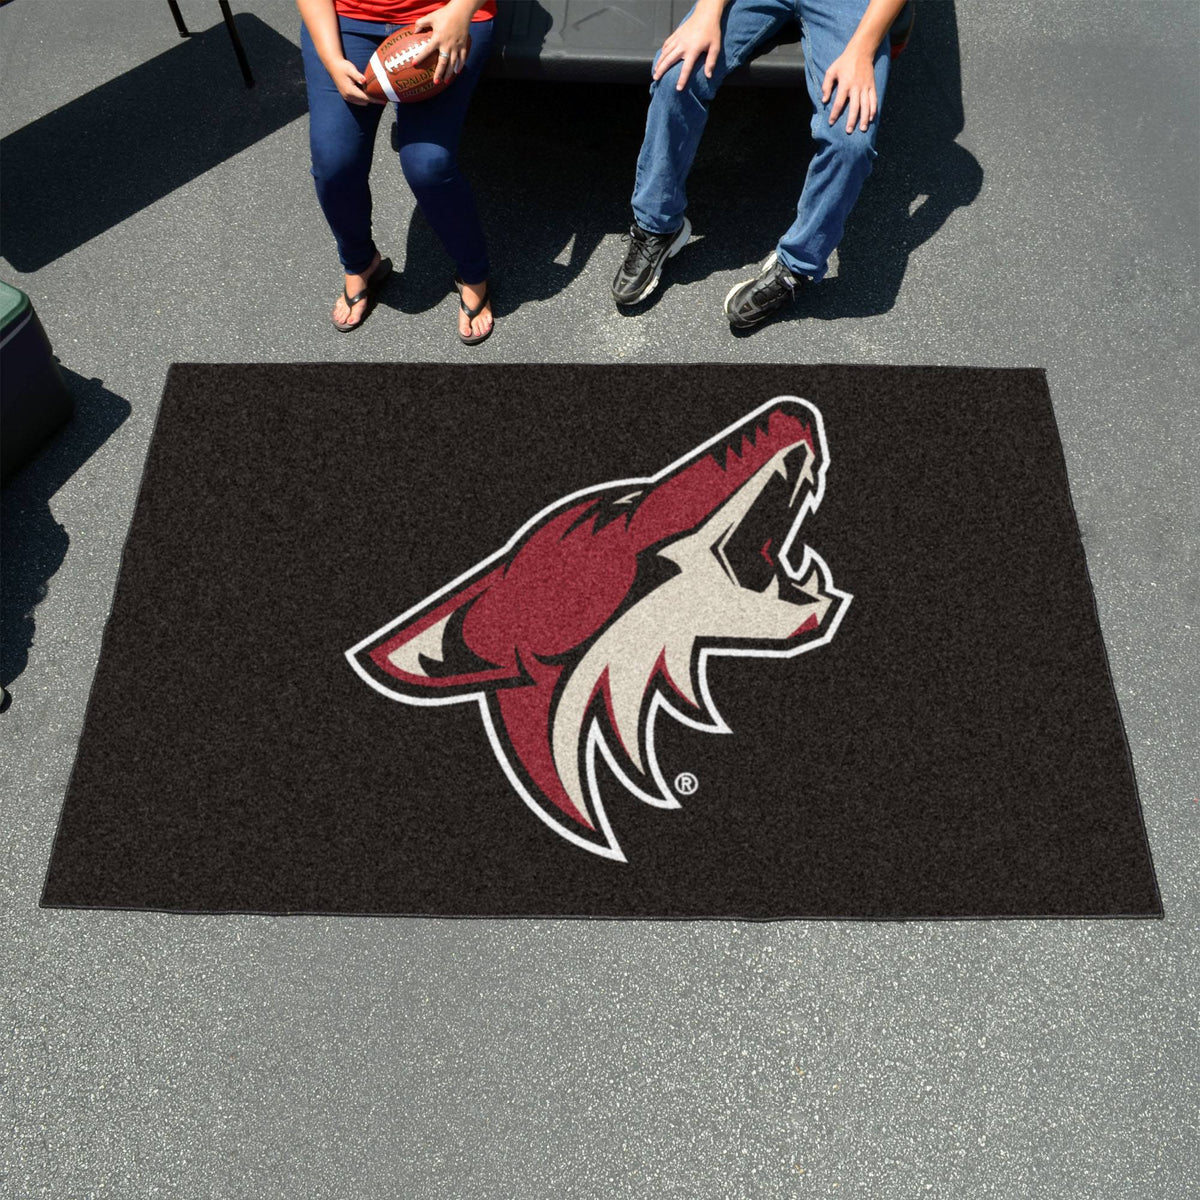 NHL - Ulti-Mat NHL Mats, Rectangular Mats, Ulti-Mat, NHL, Home Fan Mats Arizona Coyotes